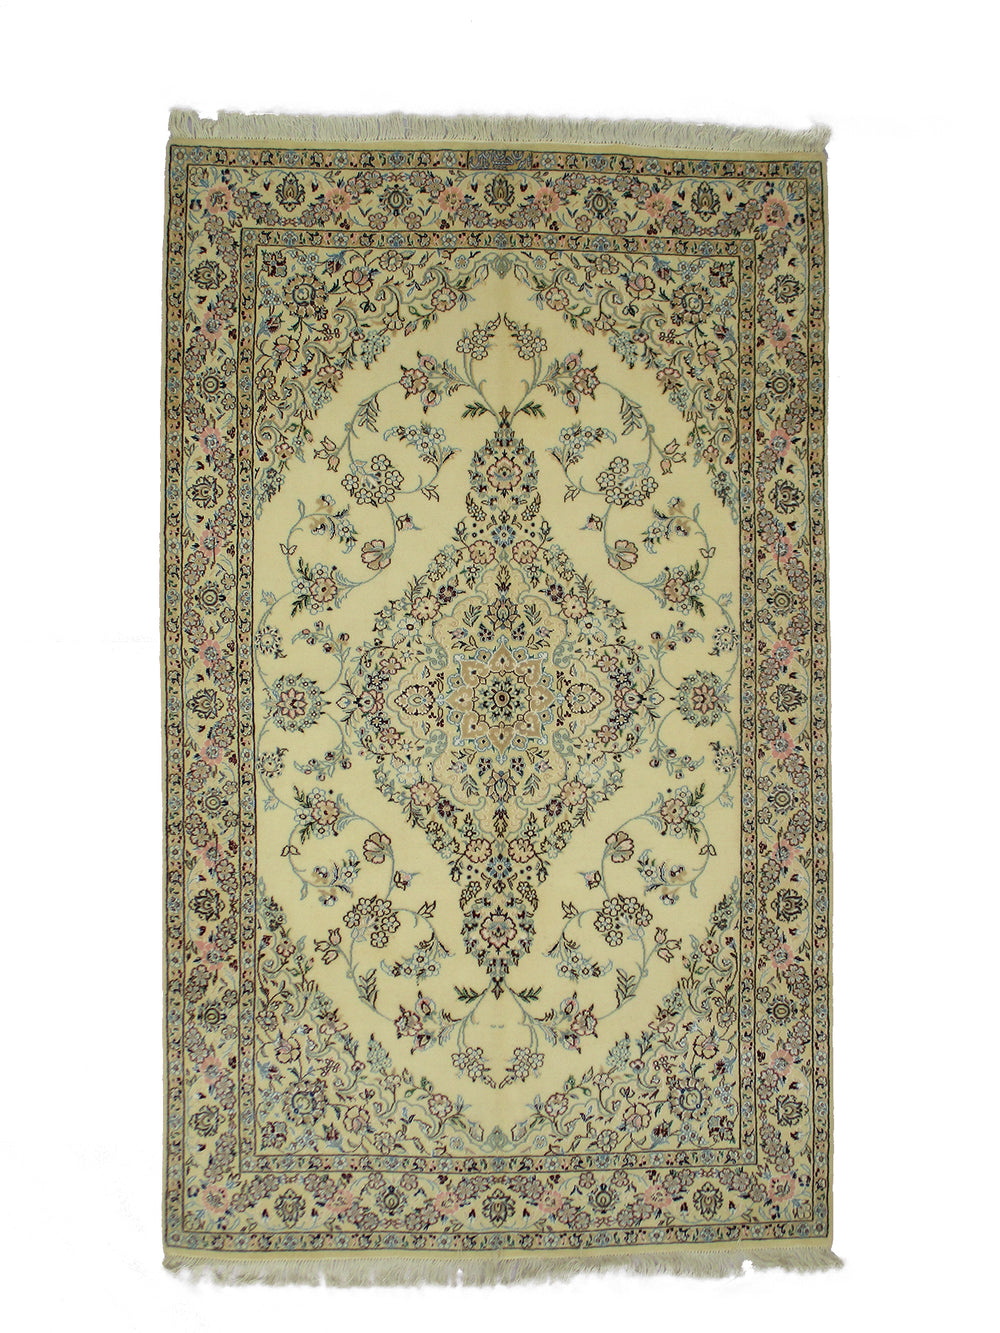 "Antique Oriental Nain Persian Area Rug 4' 3"" X 7' 0"" Handmade Rug"